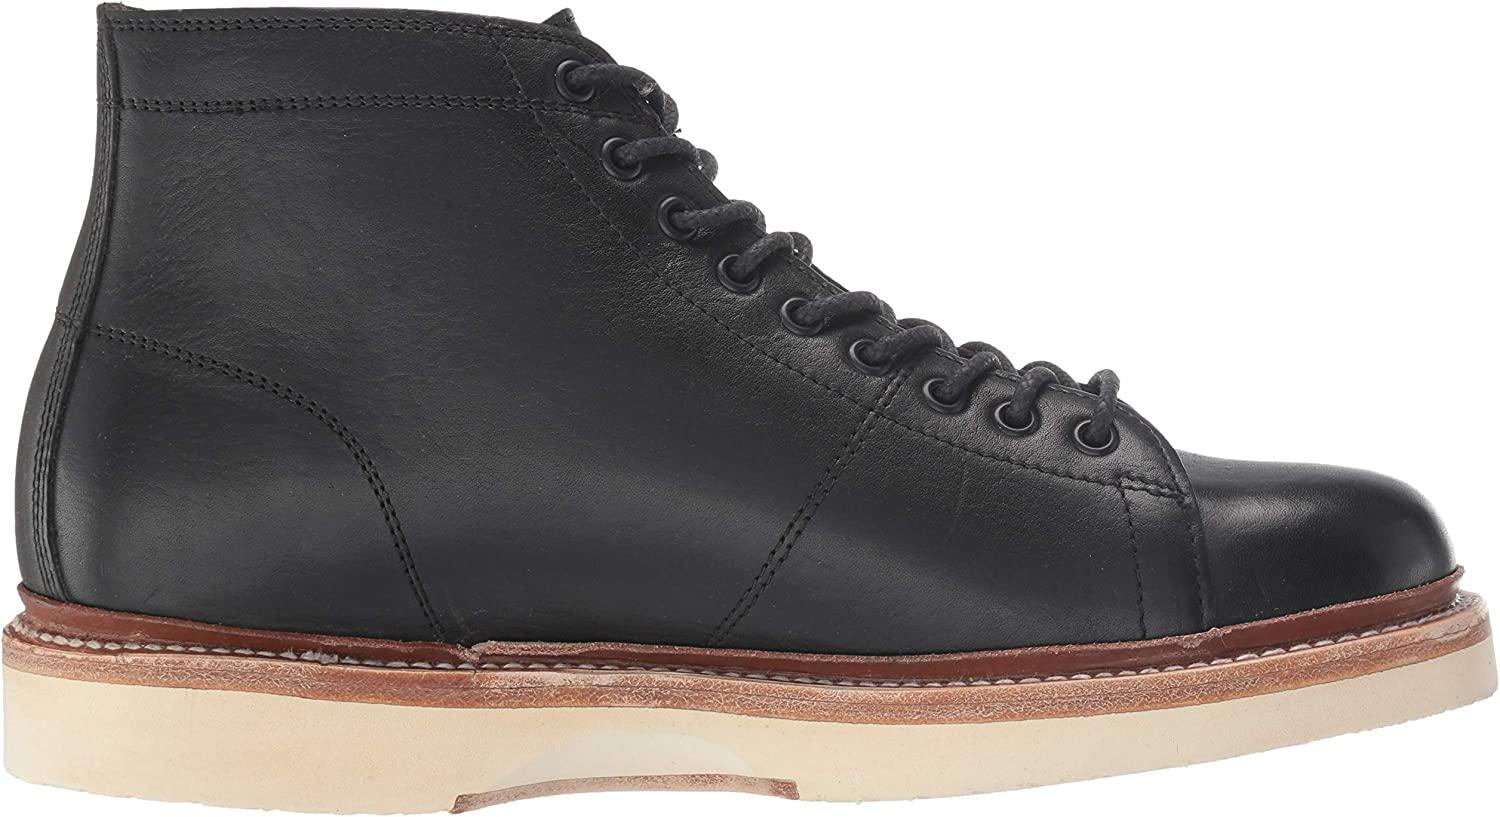 FRYE Men's Bryant Lace Up Fashion Boot Black